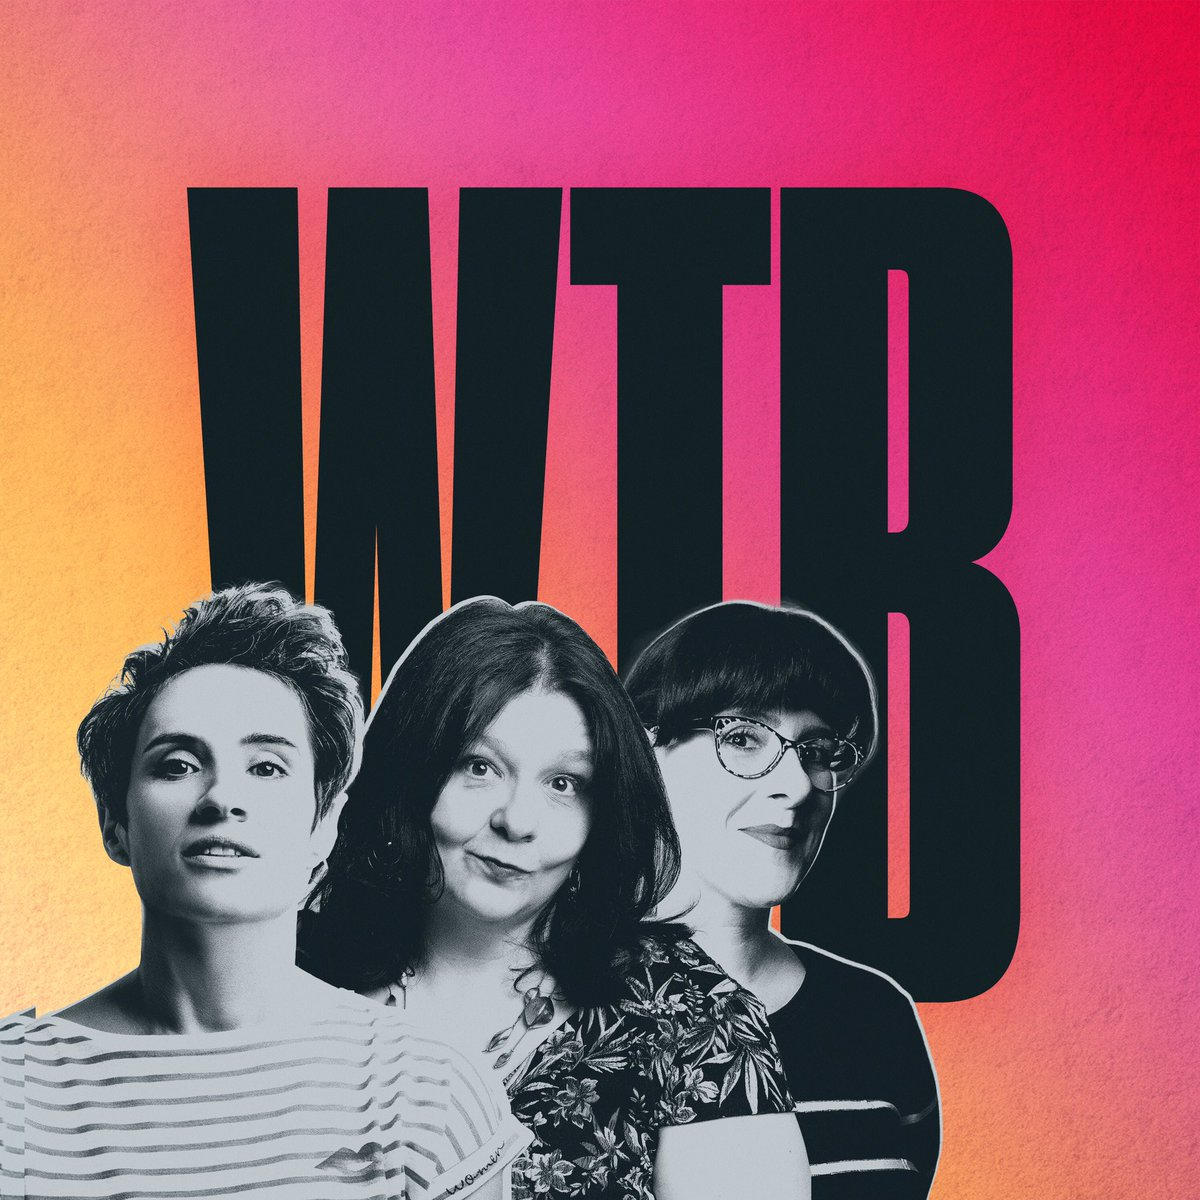 This week: Friday @wtb_podcast with @JenBrister & @allysonjsmith Thursday MY Comedy Chats with @MonsieurLeMoore @rialina_ #malindamukuma. For more info 👉 maureenyounger.com